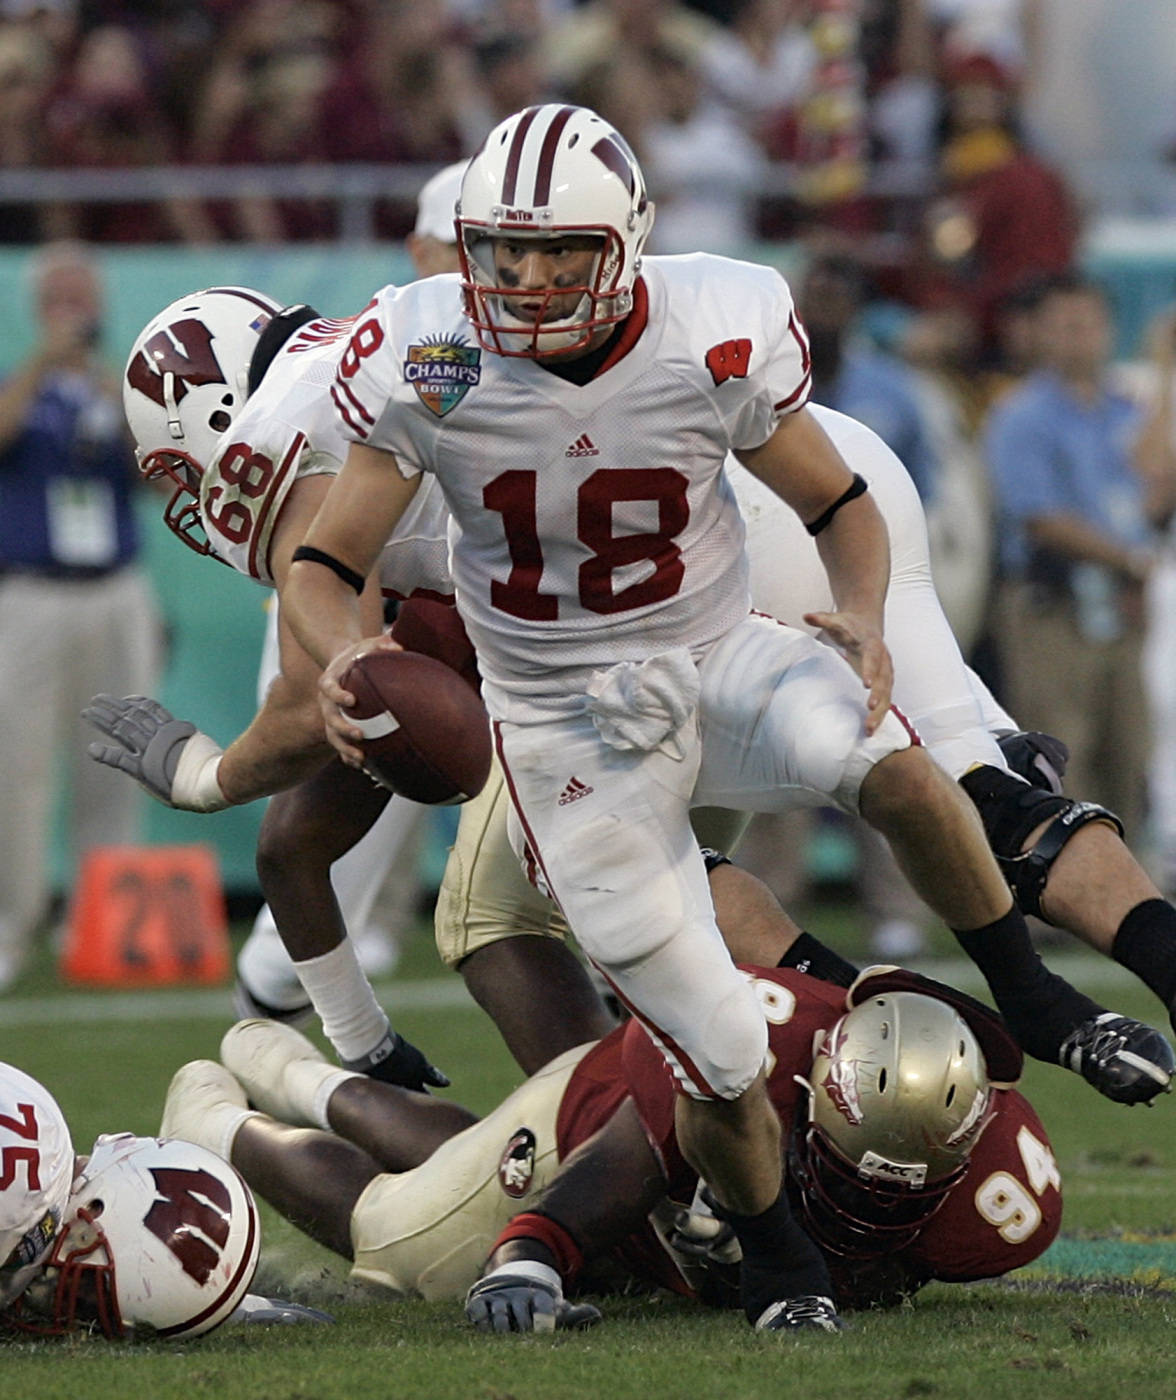 Wisconsin quarterback Dustin Sherer (18) scrambles away from Florida State defensive tackle Justin Mincey (94) during the first half.(AP Photo/John Raoux)